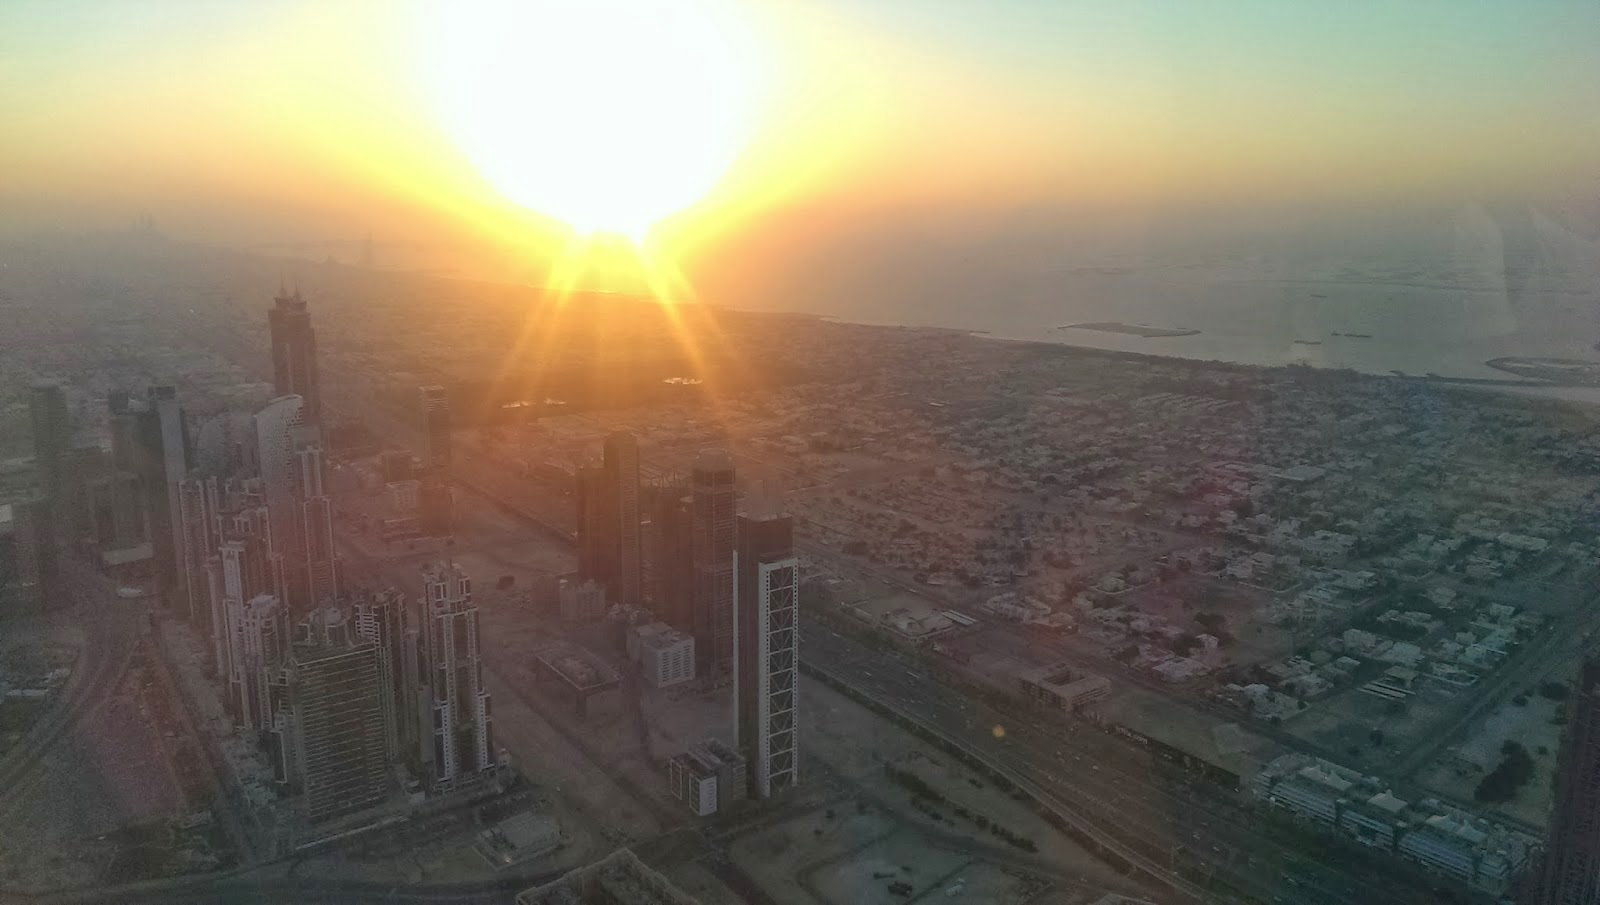 http://msmadge.blogspot.co.uk/2014/01/dubai-from-burj-khalifa.html